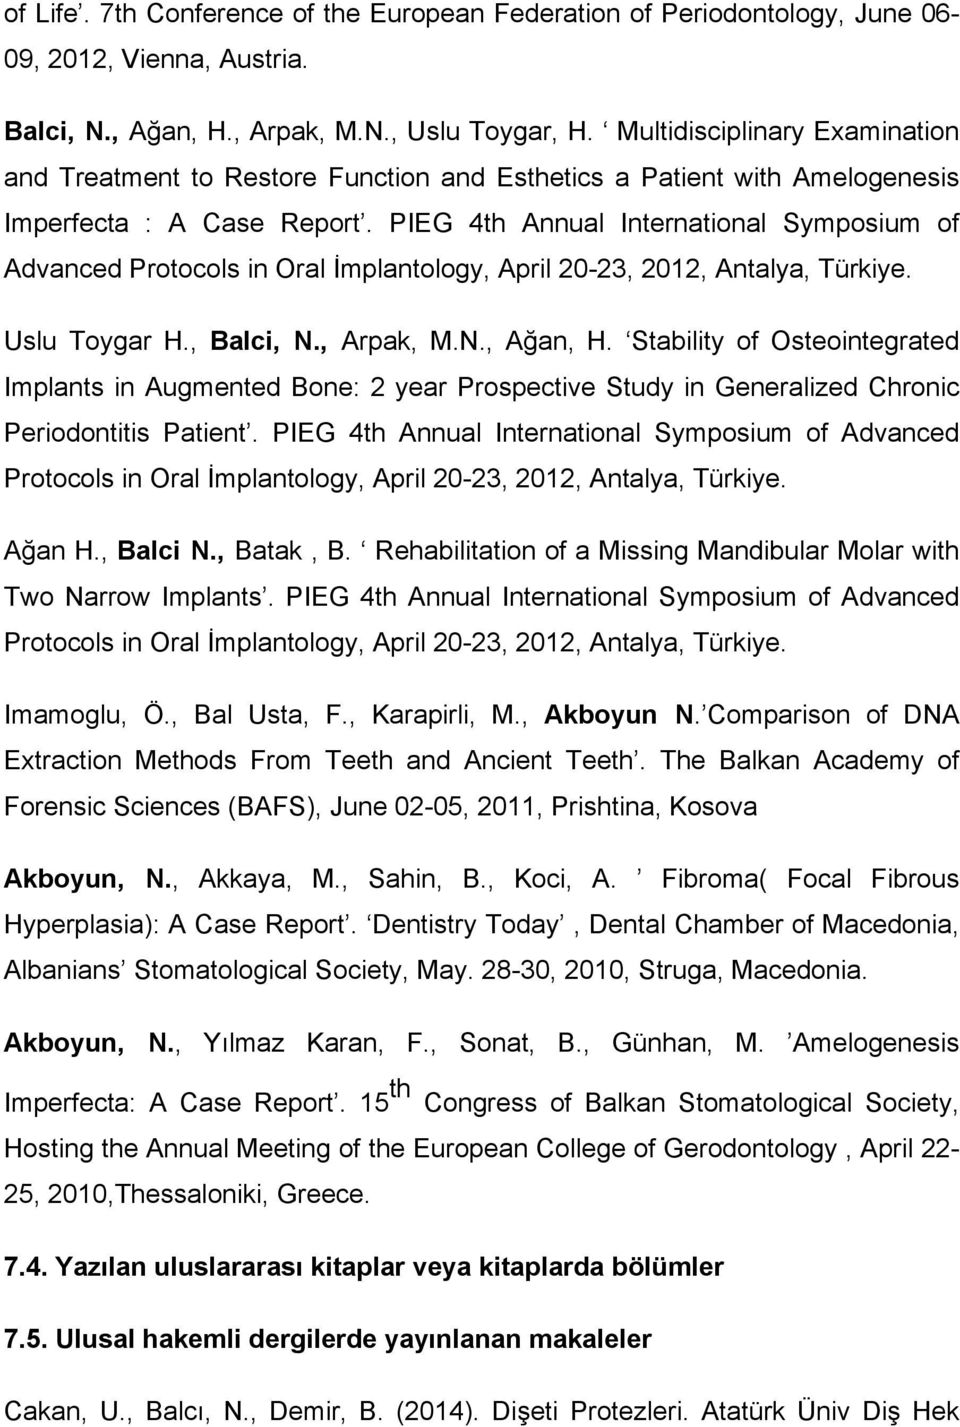 PIEG 4th Annual International Symposium of Advanced Protocols in Oral İmplantology, April 20-23, 2012, Antalya, Türkiye. Uslu Toygar H., Balci, N., Arpak, M.N., Ağan, H.